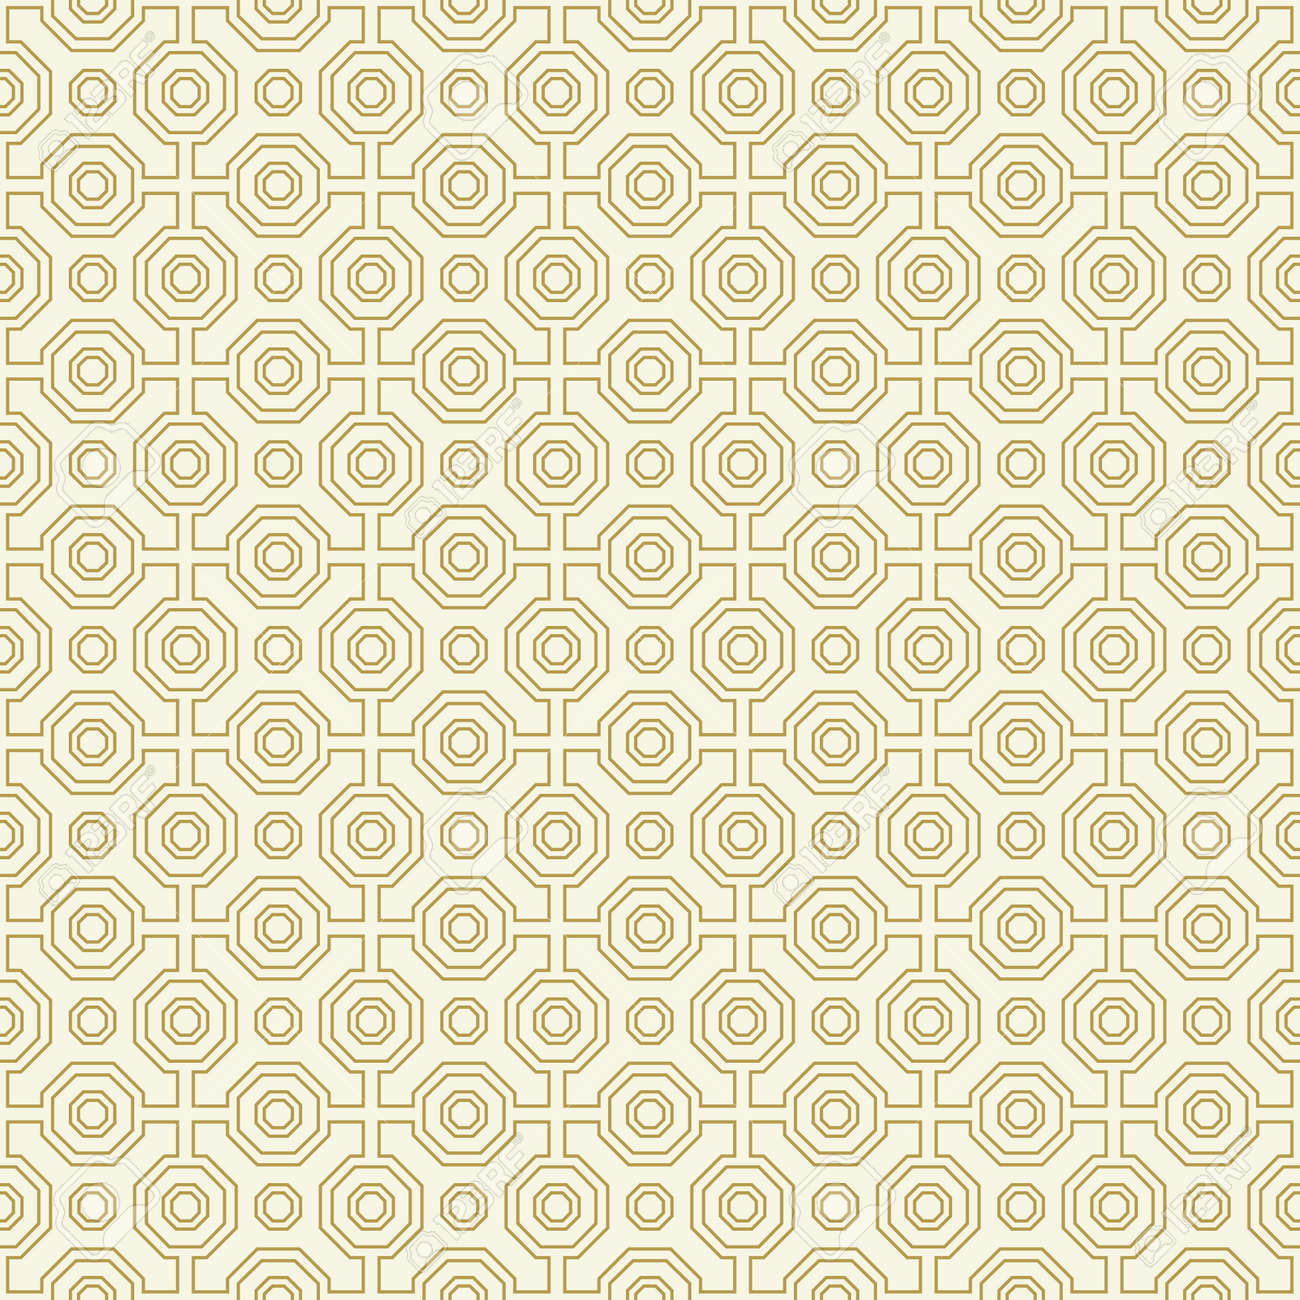 Geometric abstract octagonal golden and white background. Geometric abstract ornament. Seamless modern pattern - 169559477